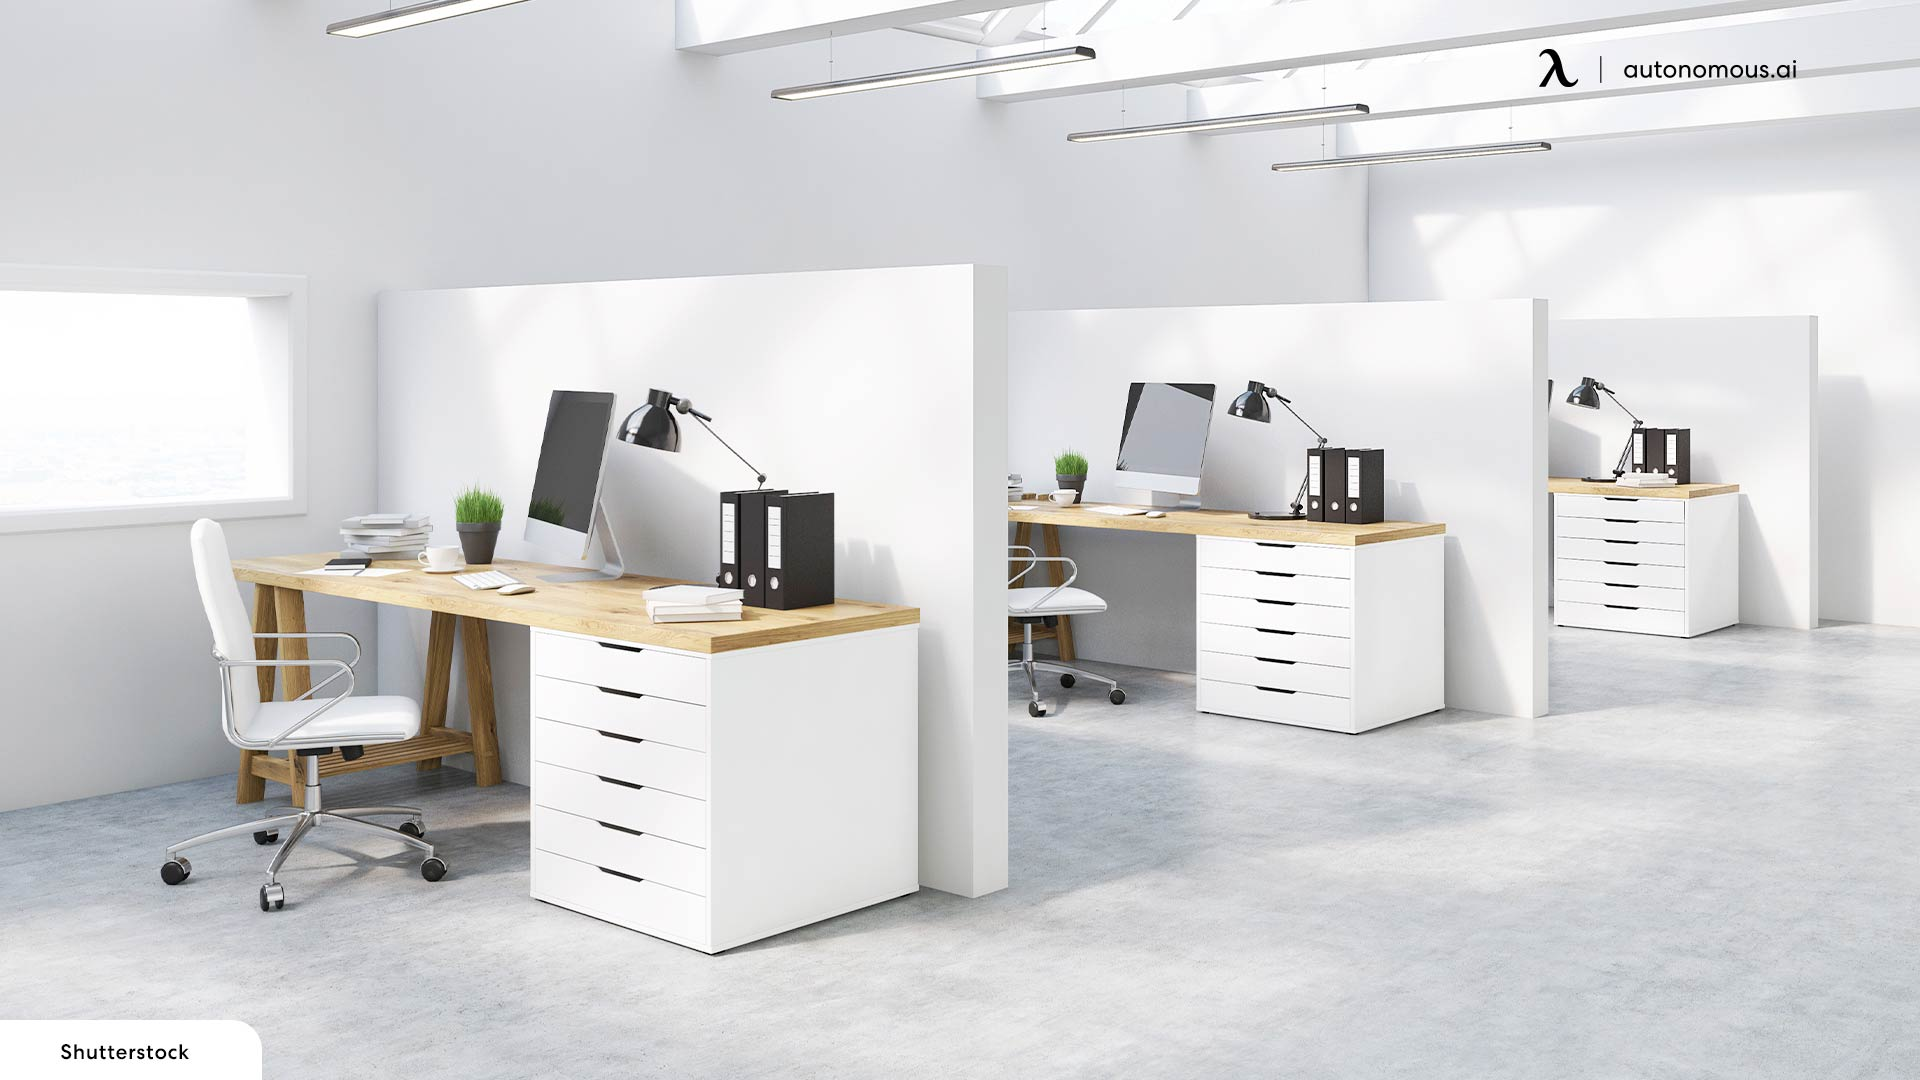 What is the Best Way to Build a Modular Workspace